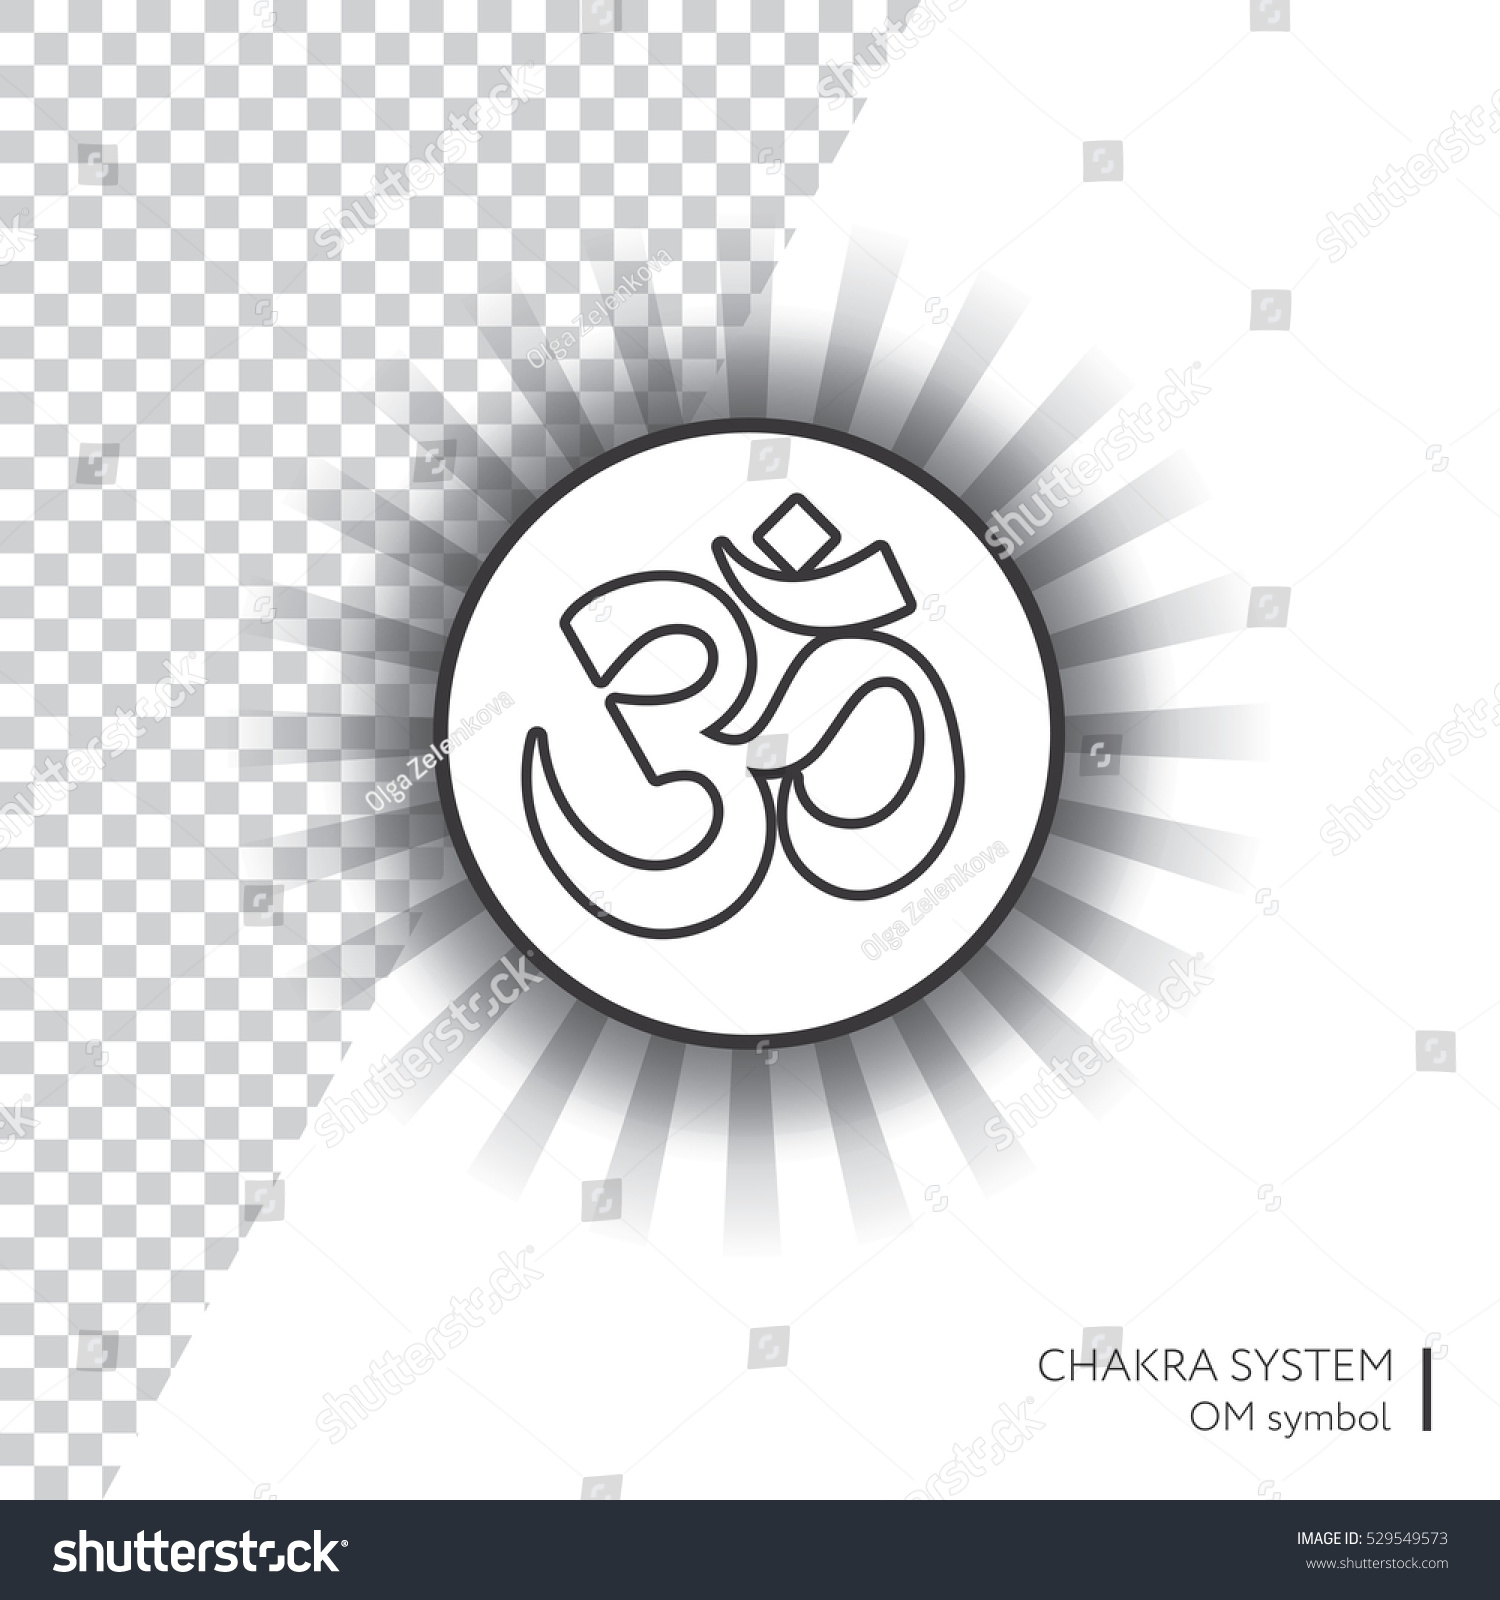 Symbol om vector isolated minimalistic icon stock vector 529549573 symbol om vector isolated minimalistic icon with transparent aura for yoga studio banner biocorpaavc Images